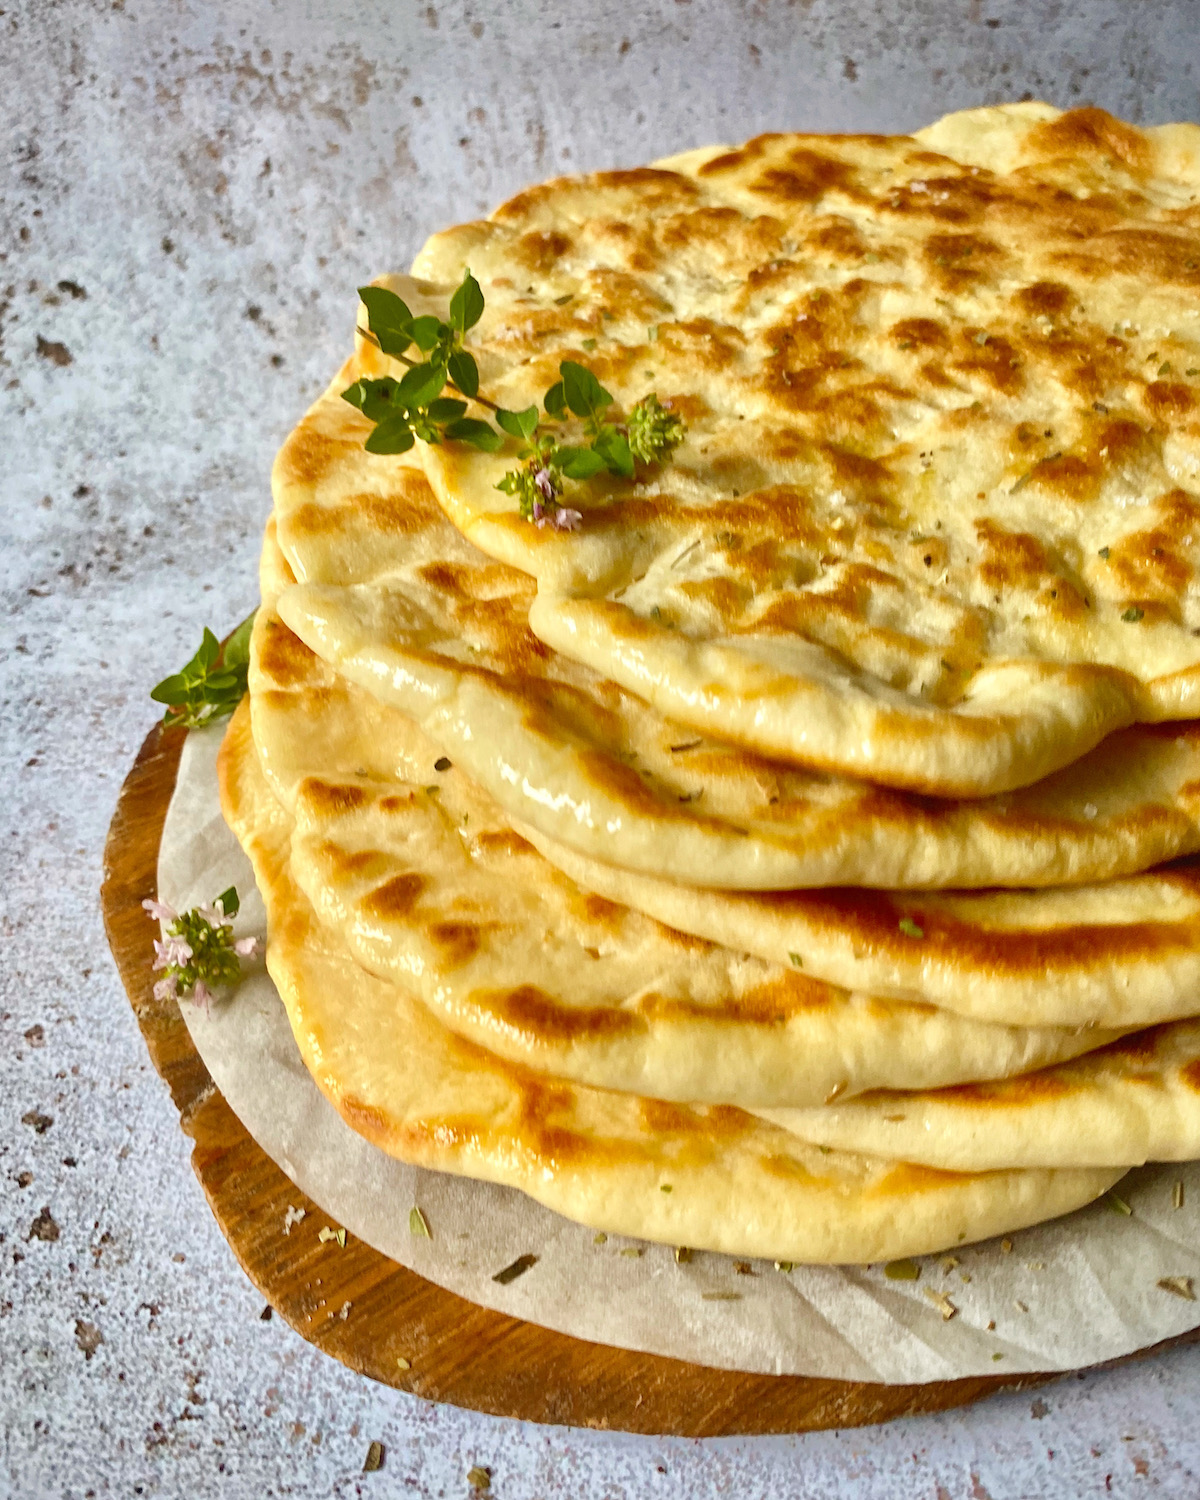 Greek Pita Bread A Delicious Flat Bread From Marilena S Kitchen